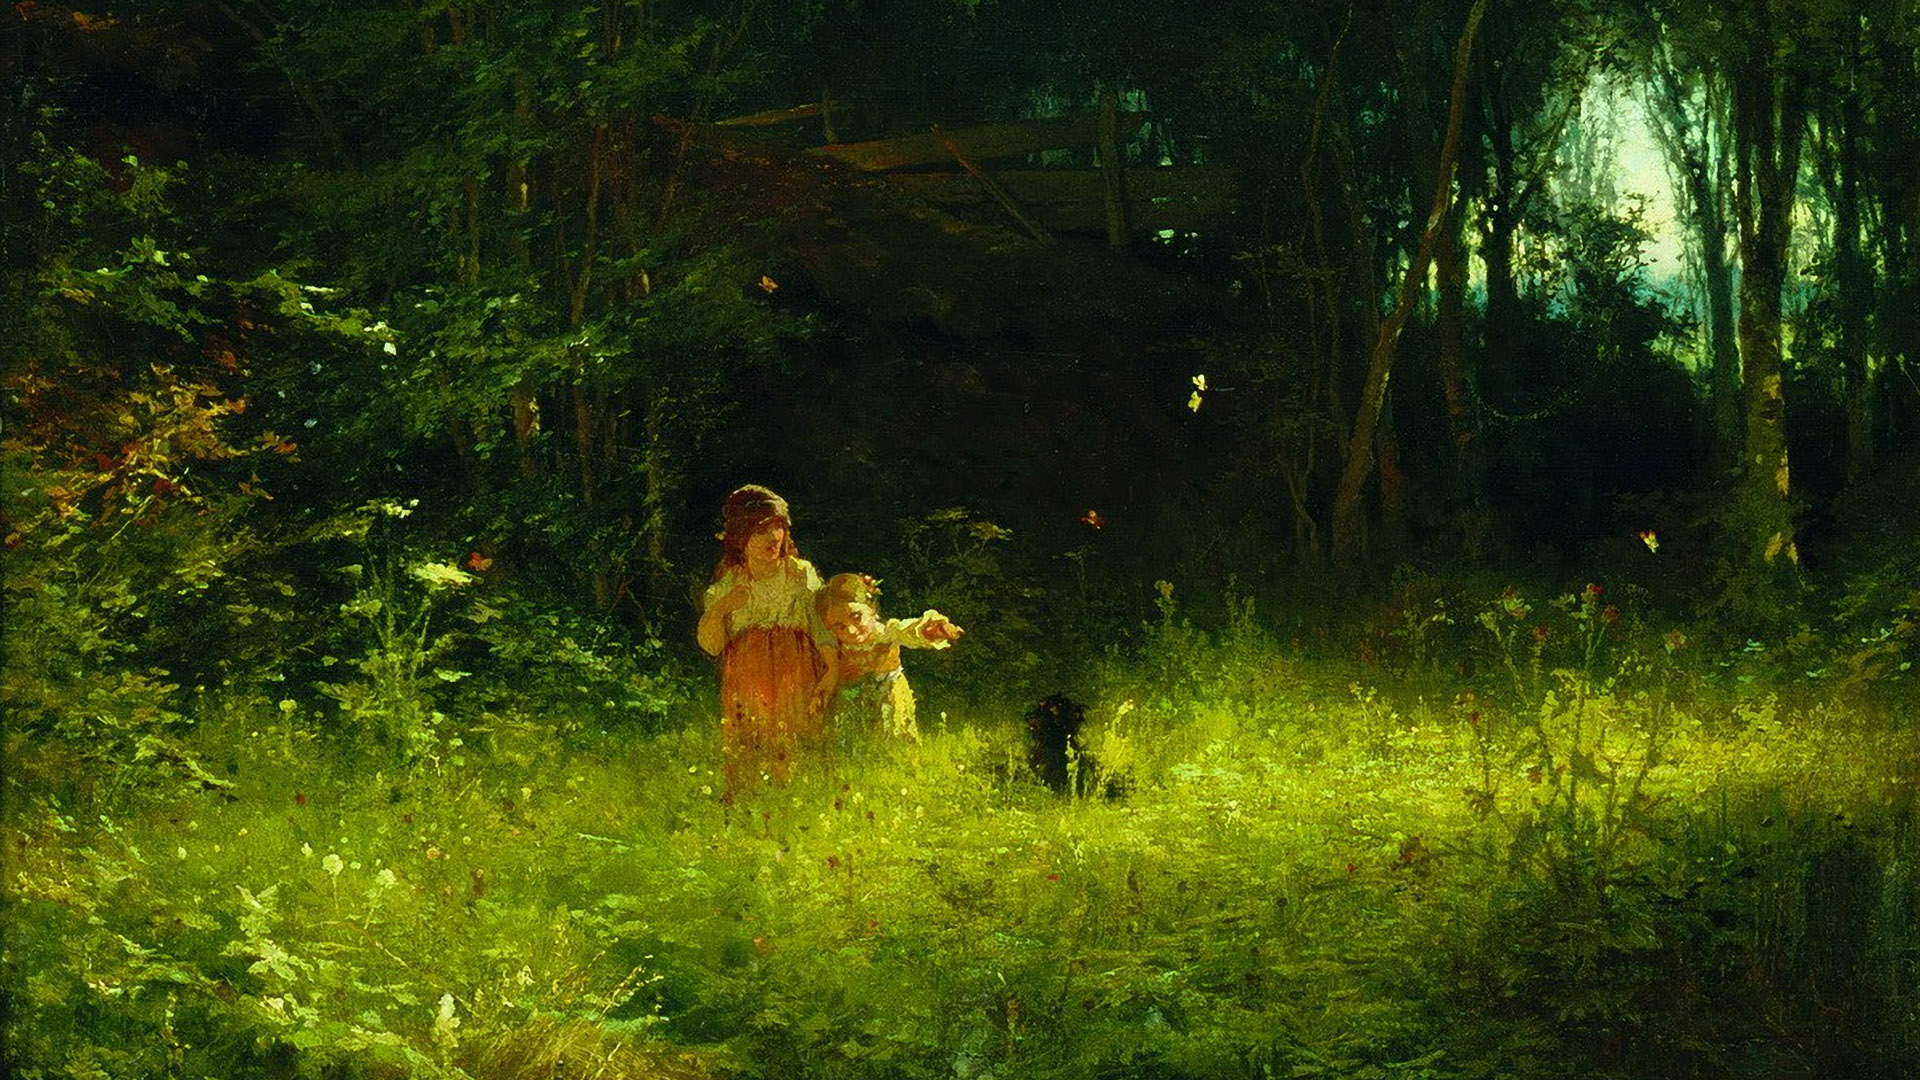 Ivan Kramskoy - Children in the woods 1920x1080